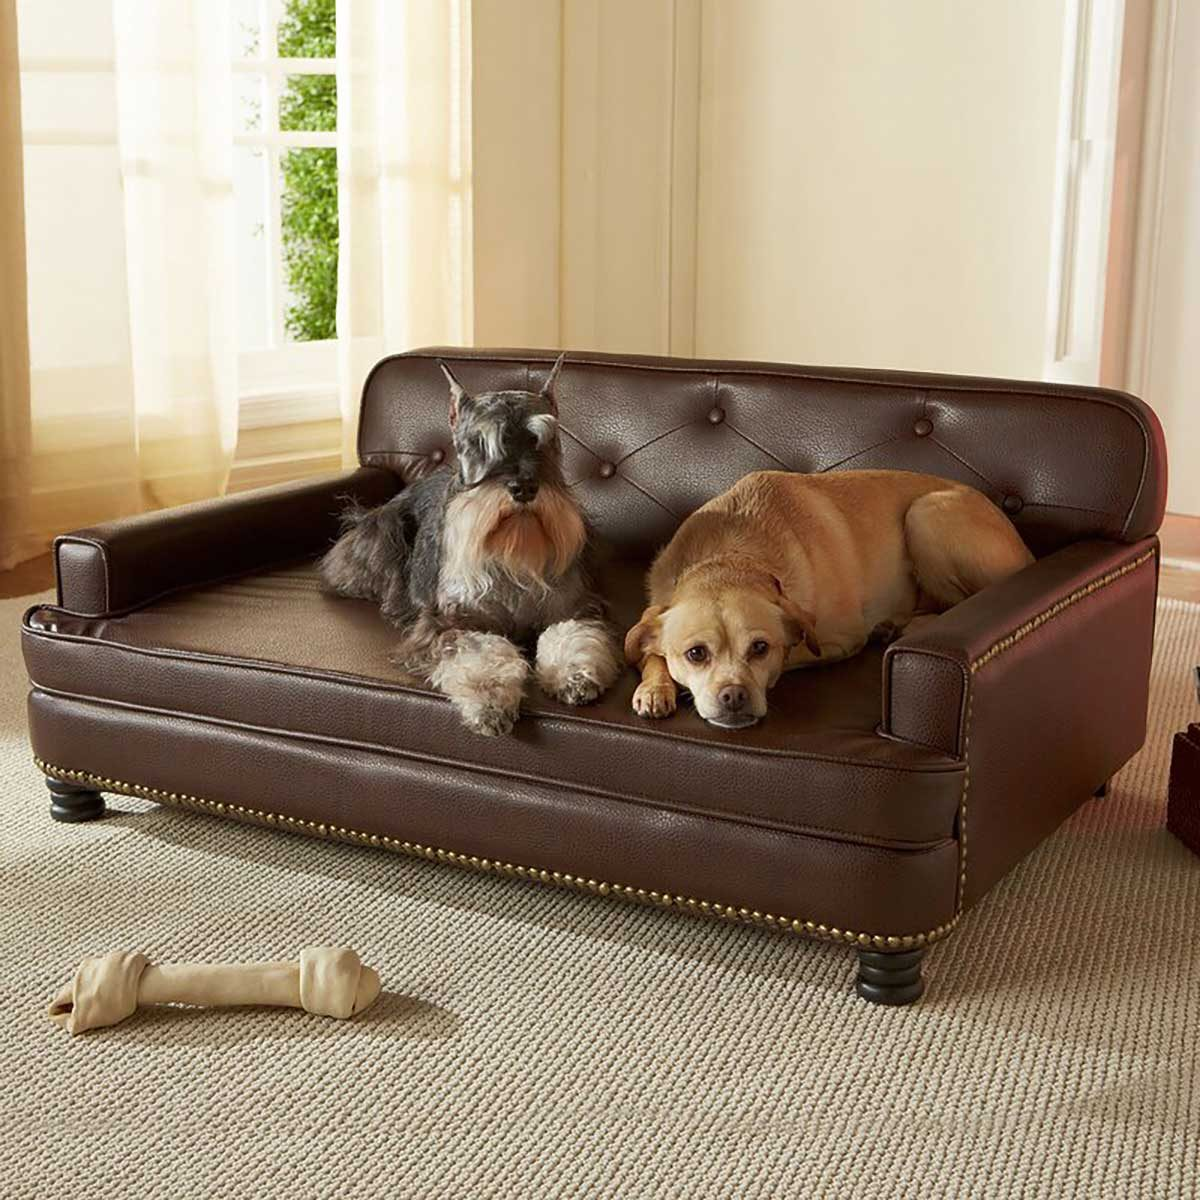 Dog Bed Consuelo+dog+sofa